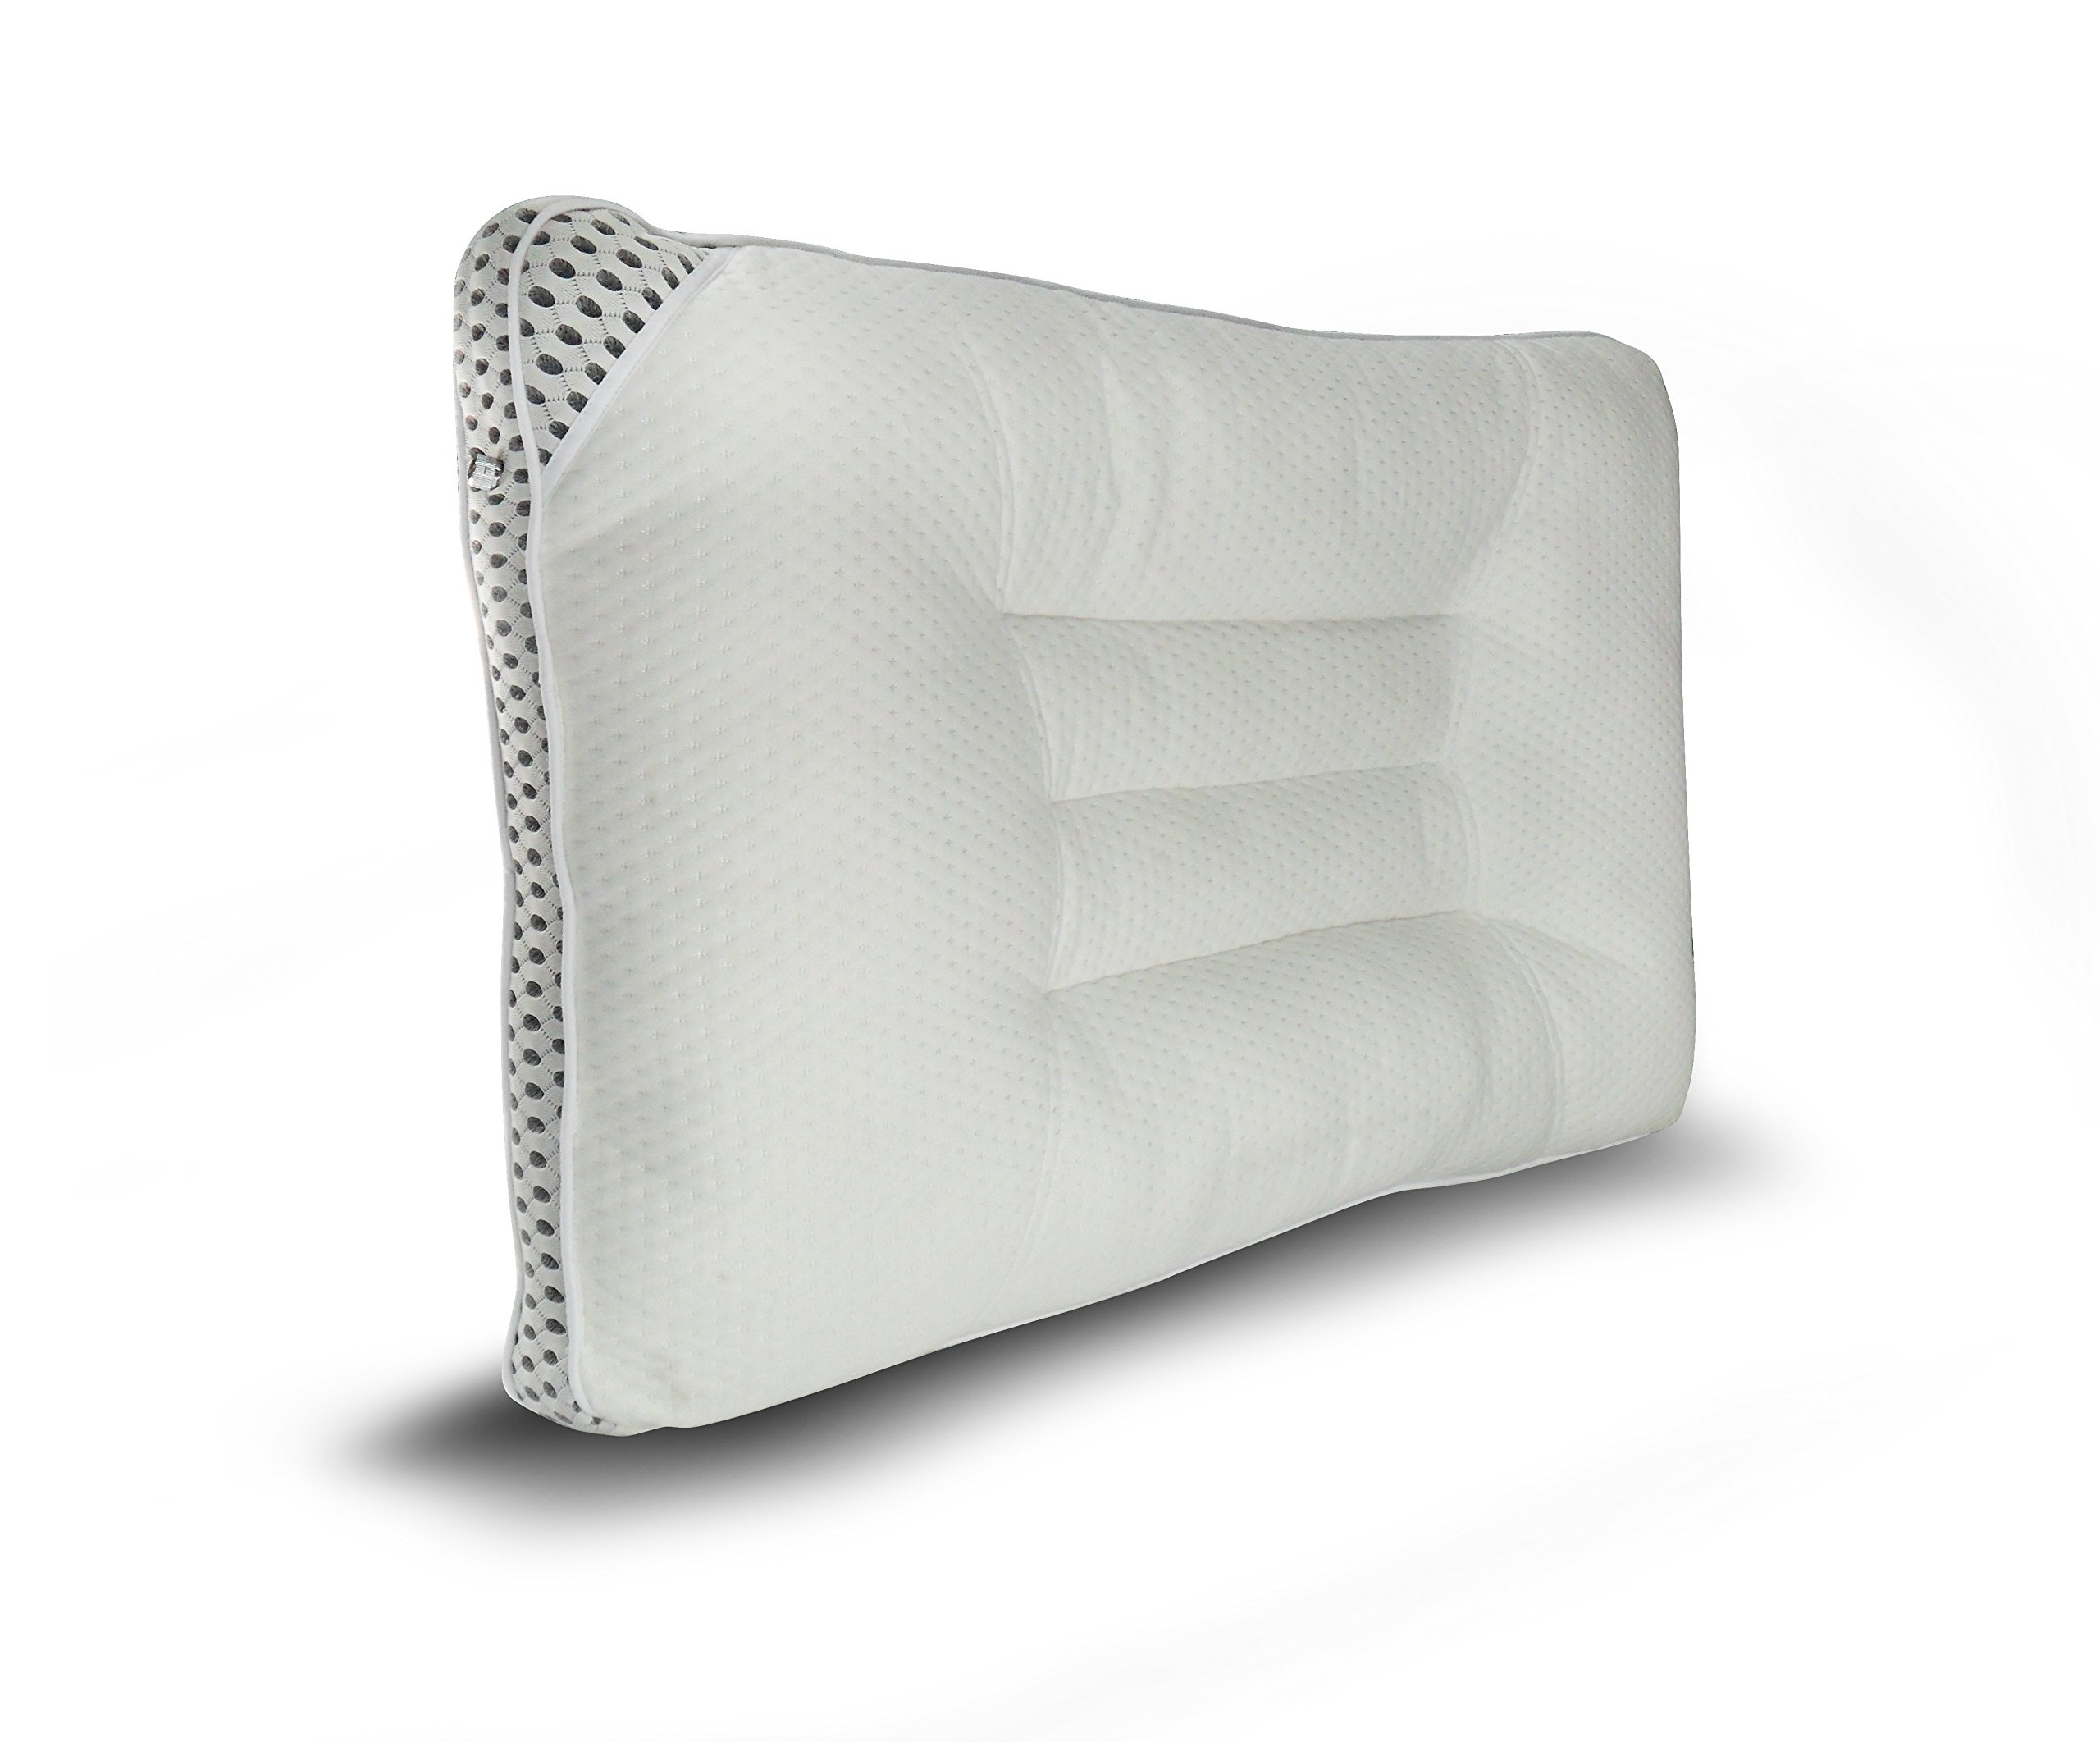 OXA Adjustable Bed Pillows